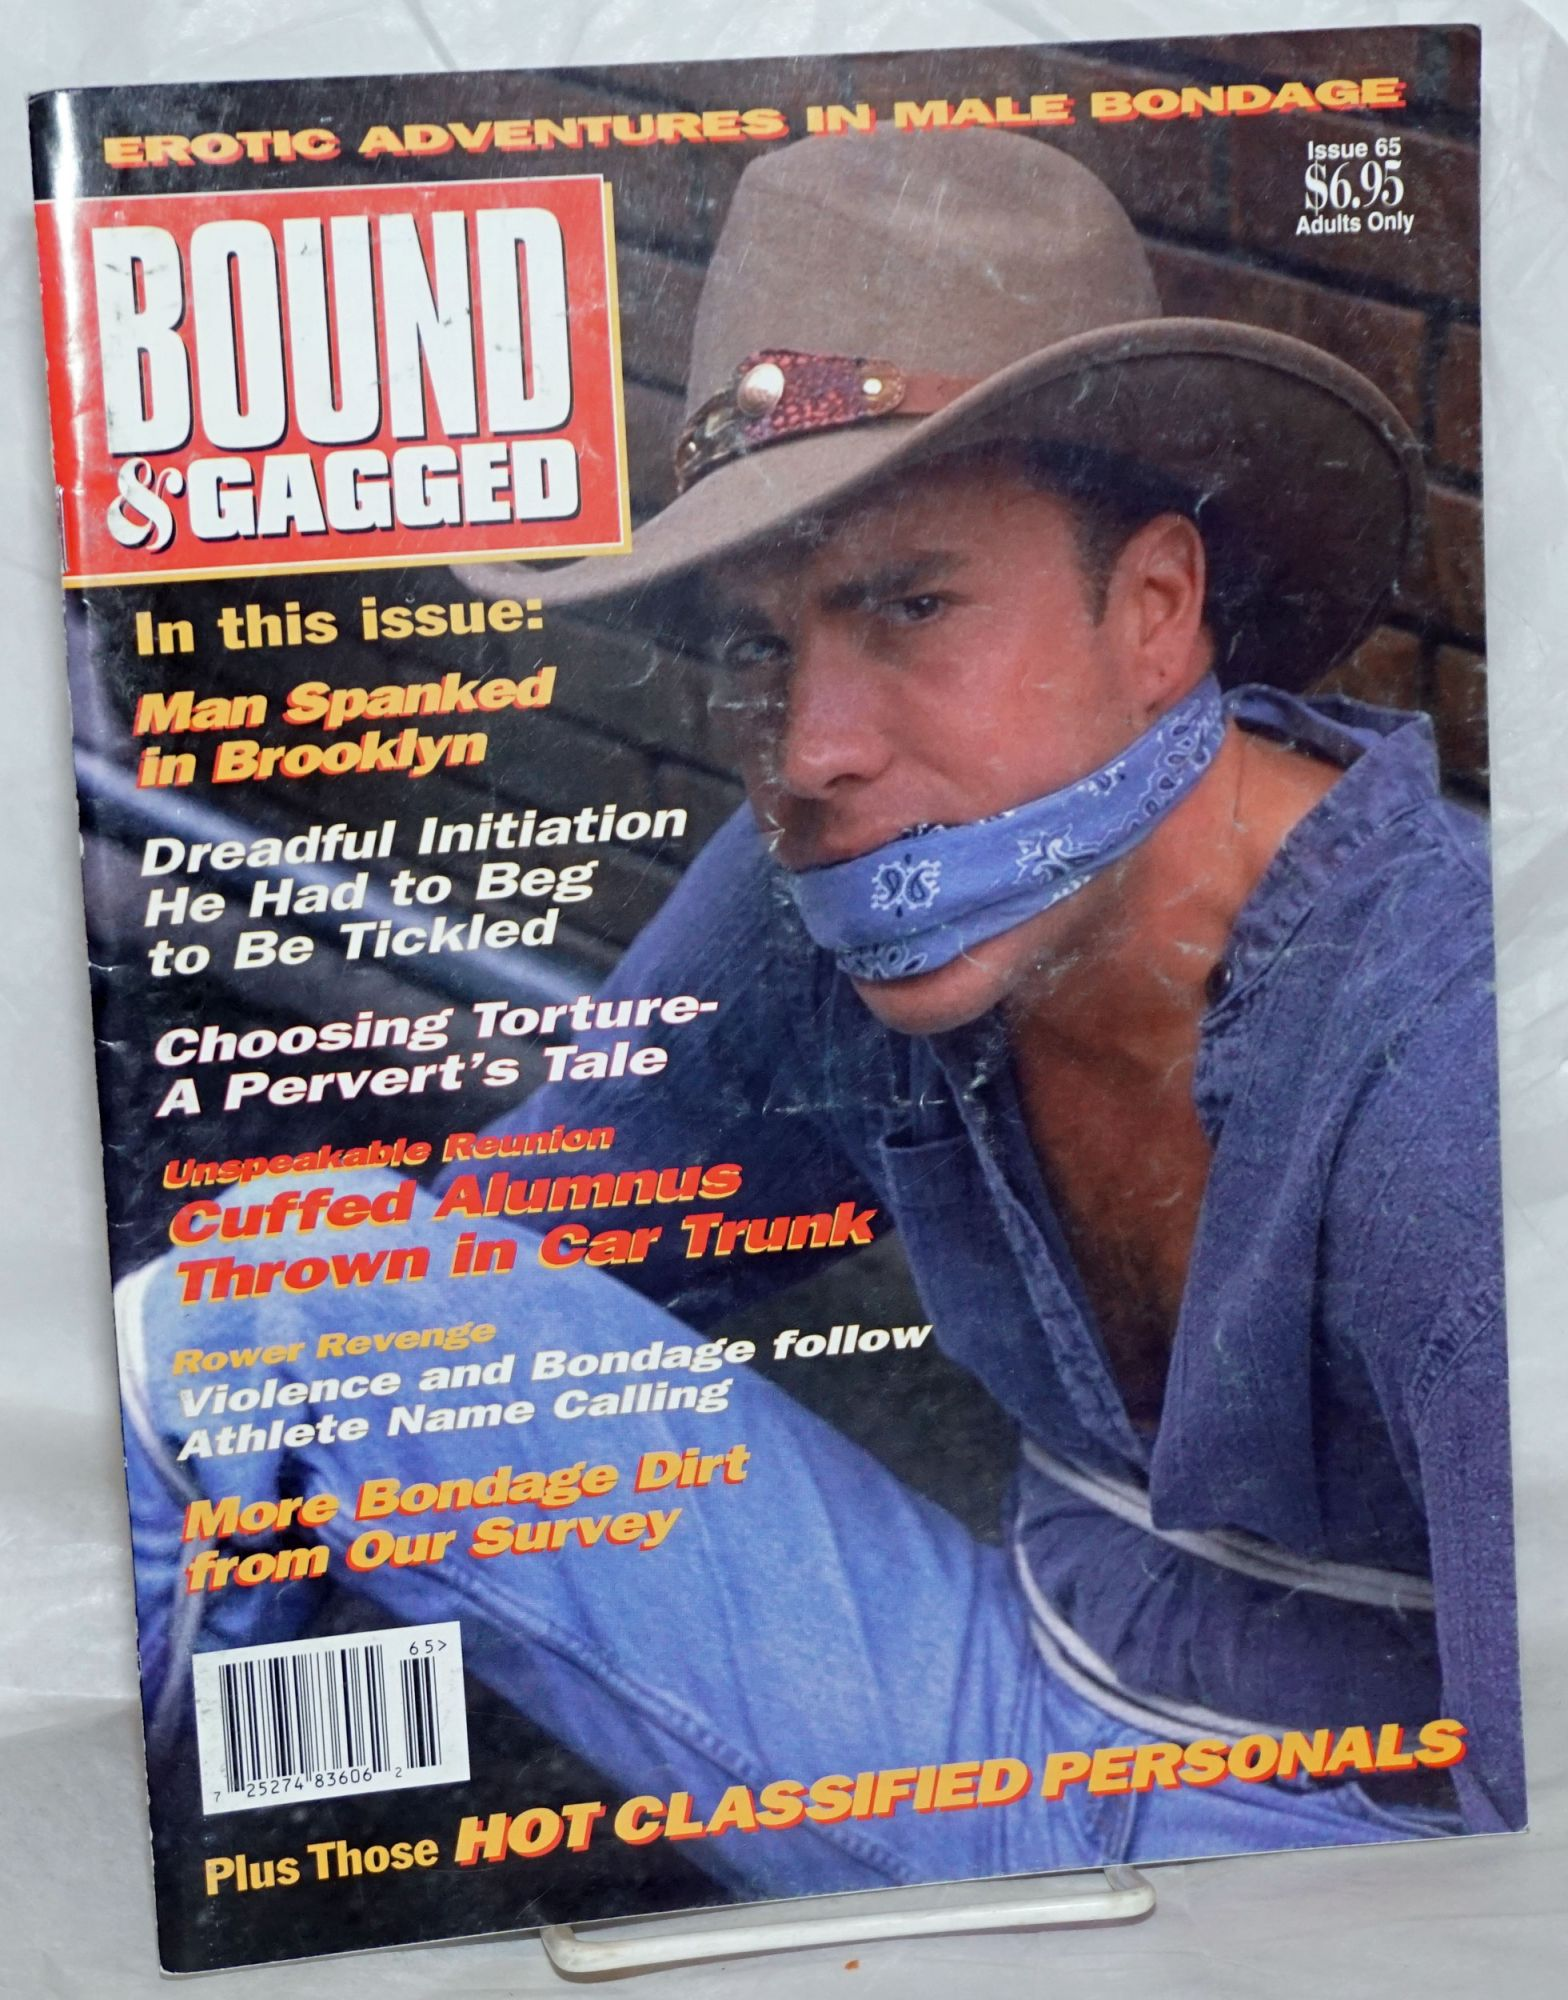 Bound and Gagged: erotic adventures in male bondage, issue no  65,  July/August, 1998 by Bob Wingate, Zeus James Bond, etc, Larry Townsend on  Bolerium